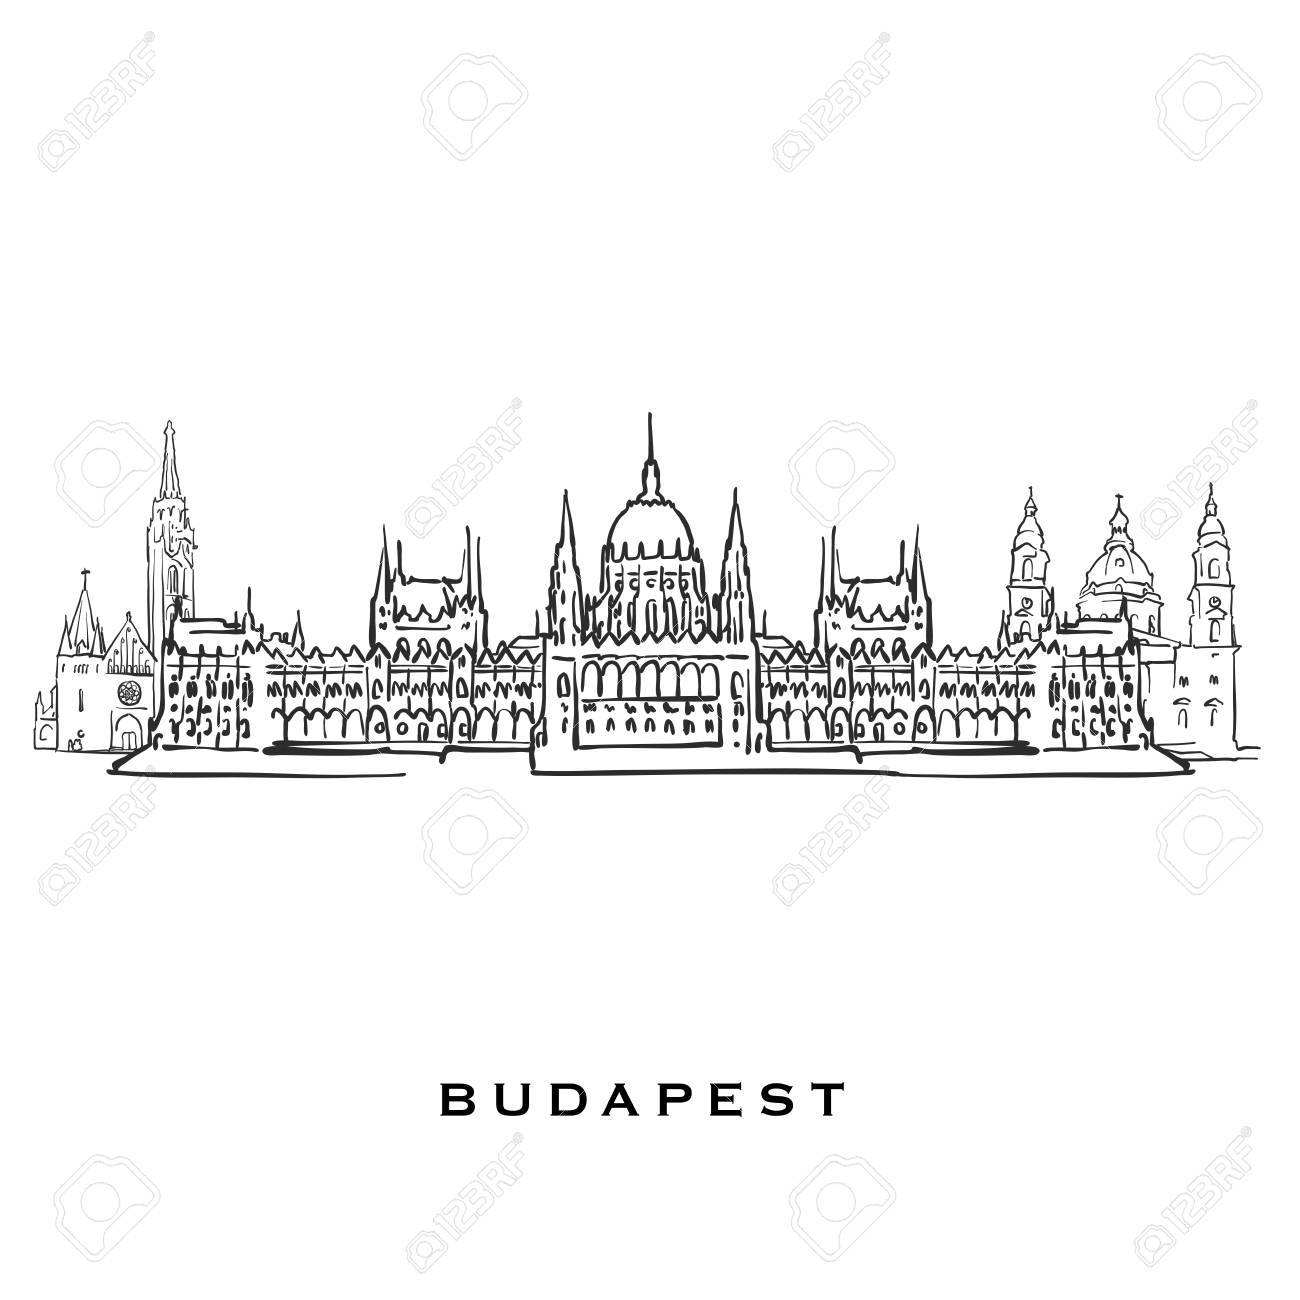 Budapest Hungary famous architecture  Outlined vector sketch